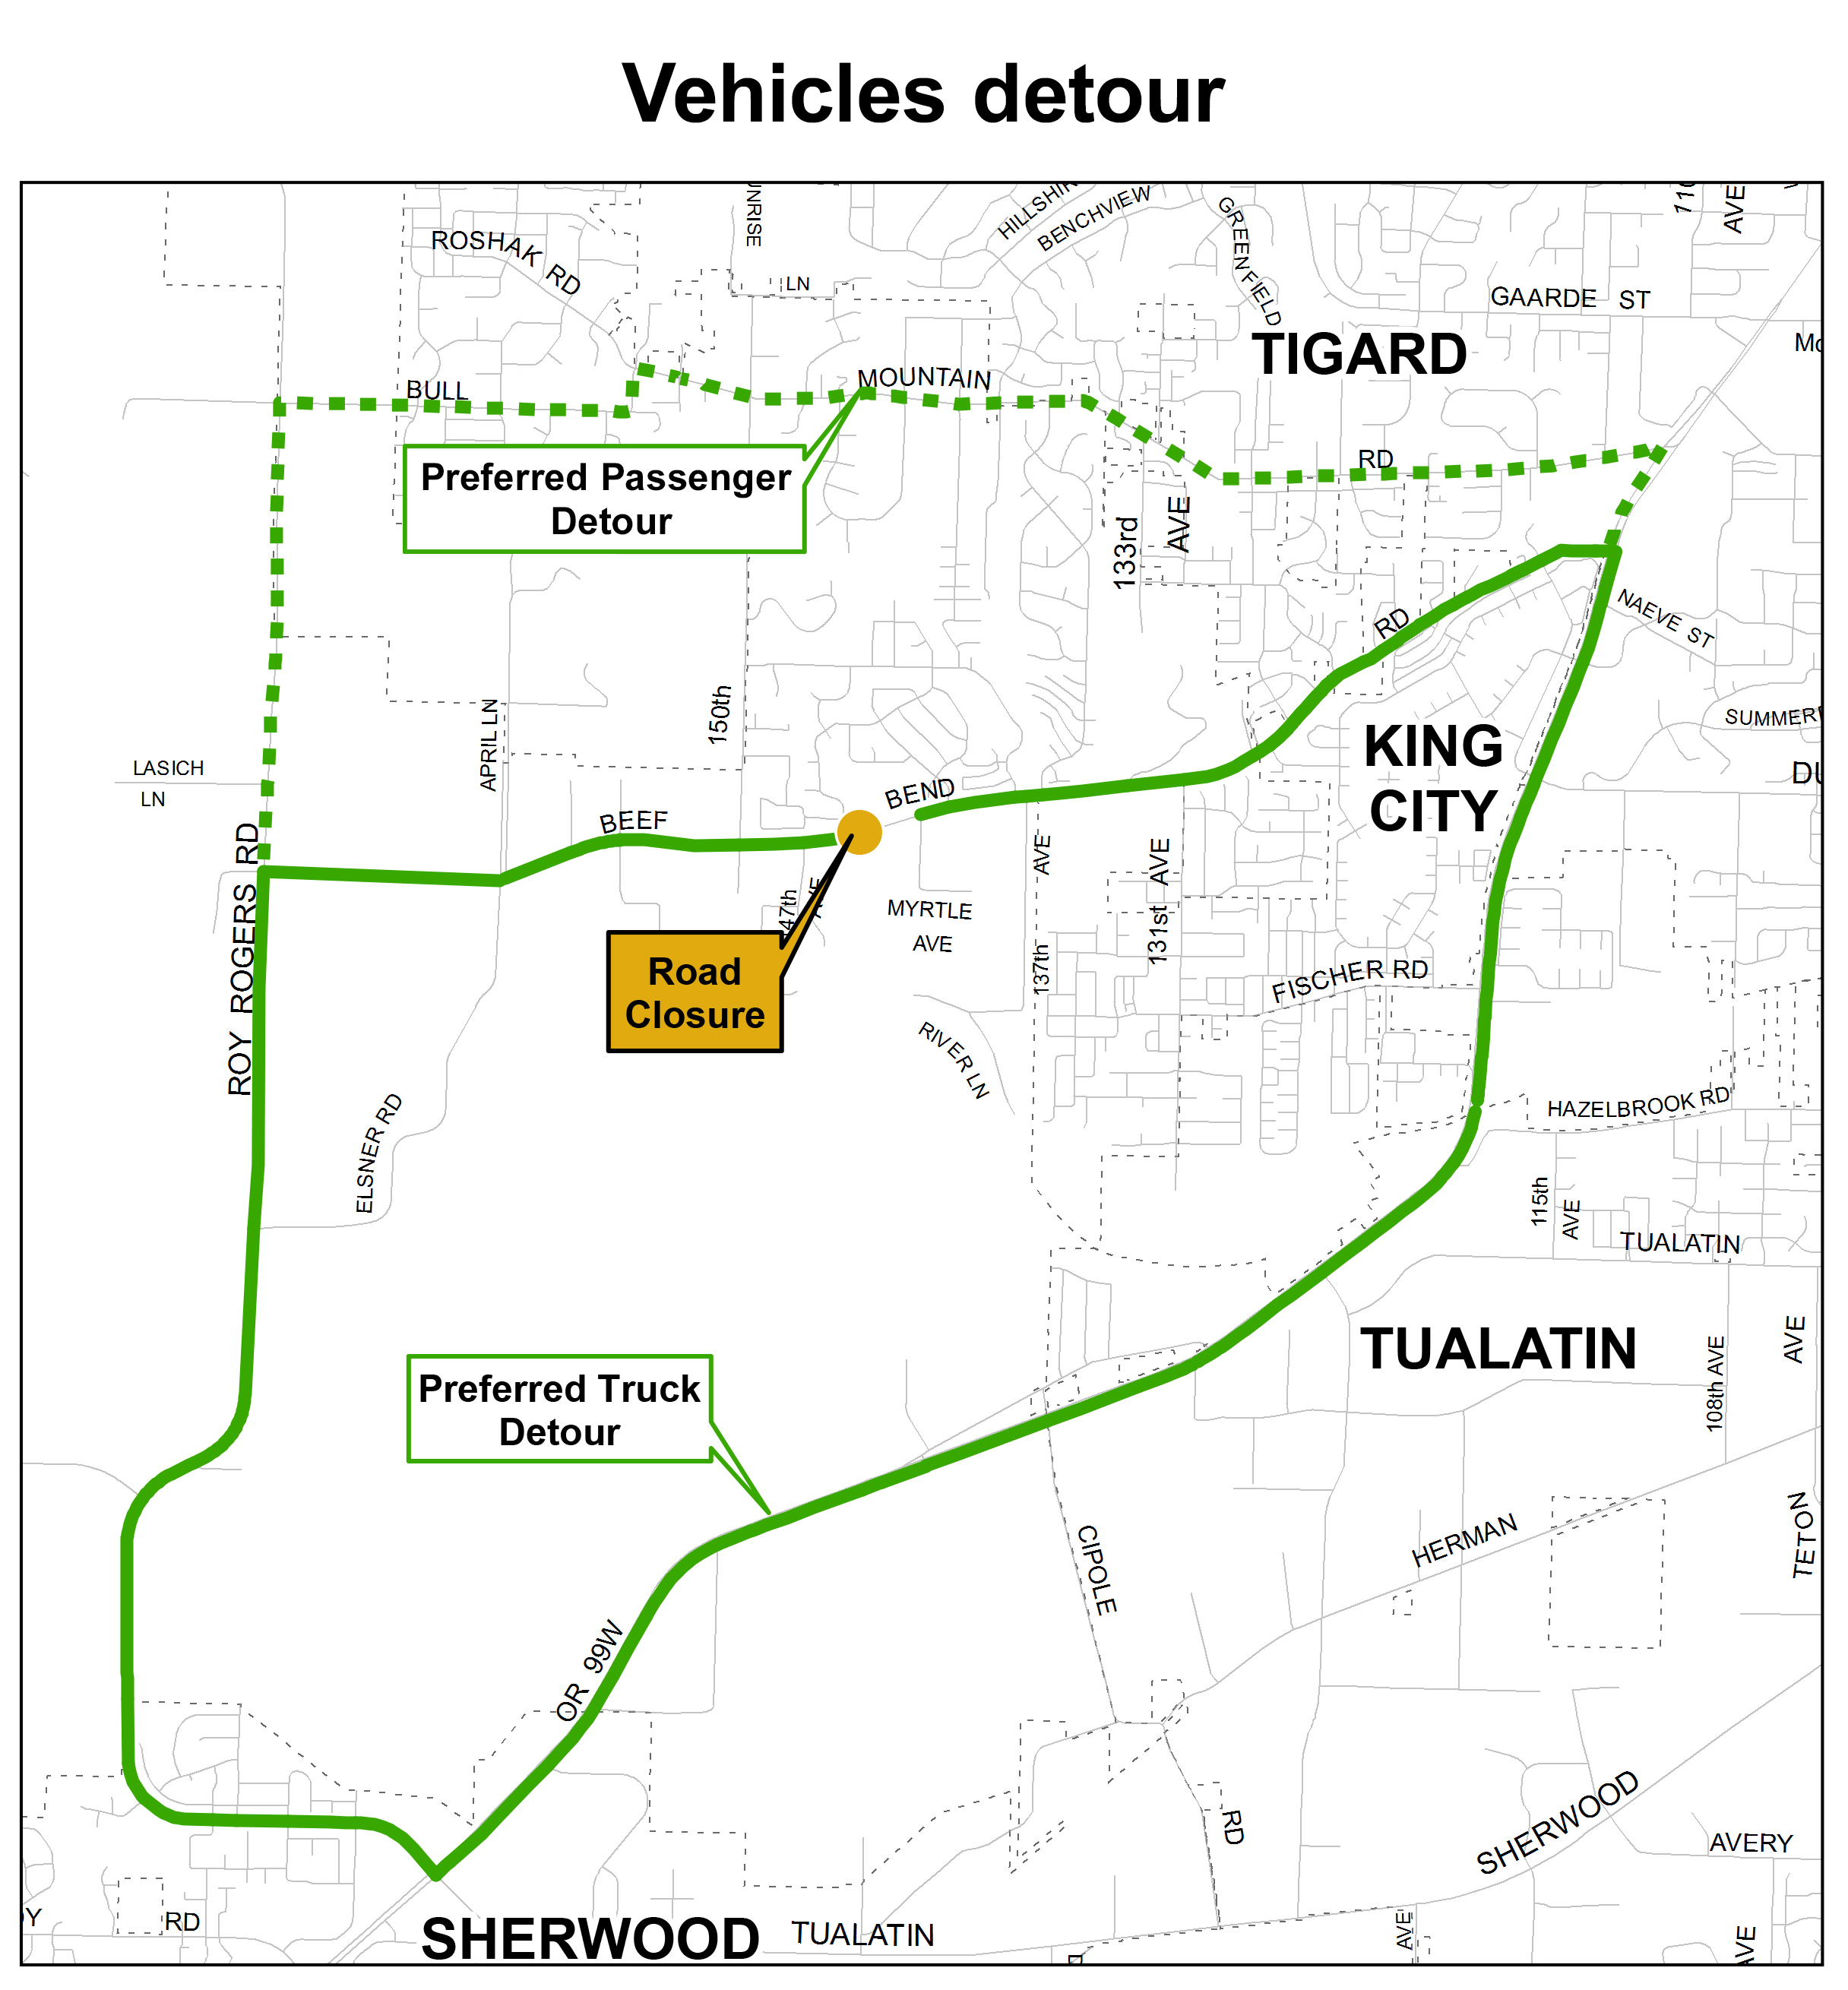 Vehicles detour map